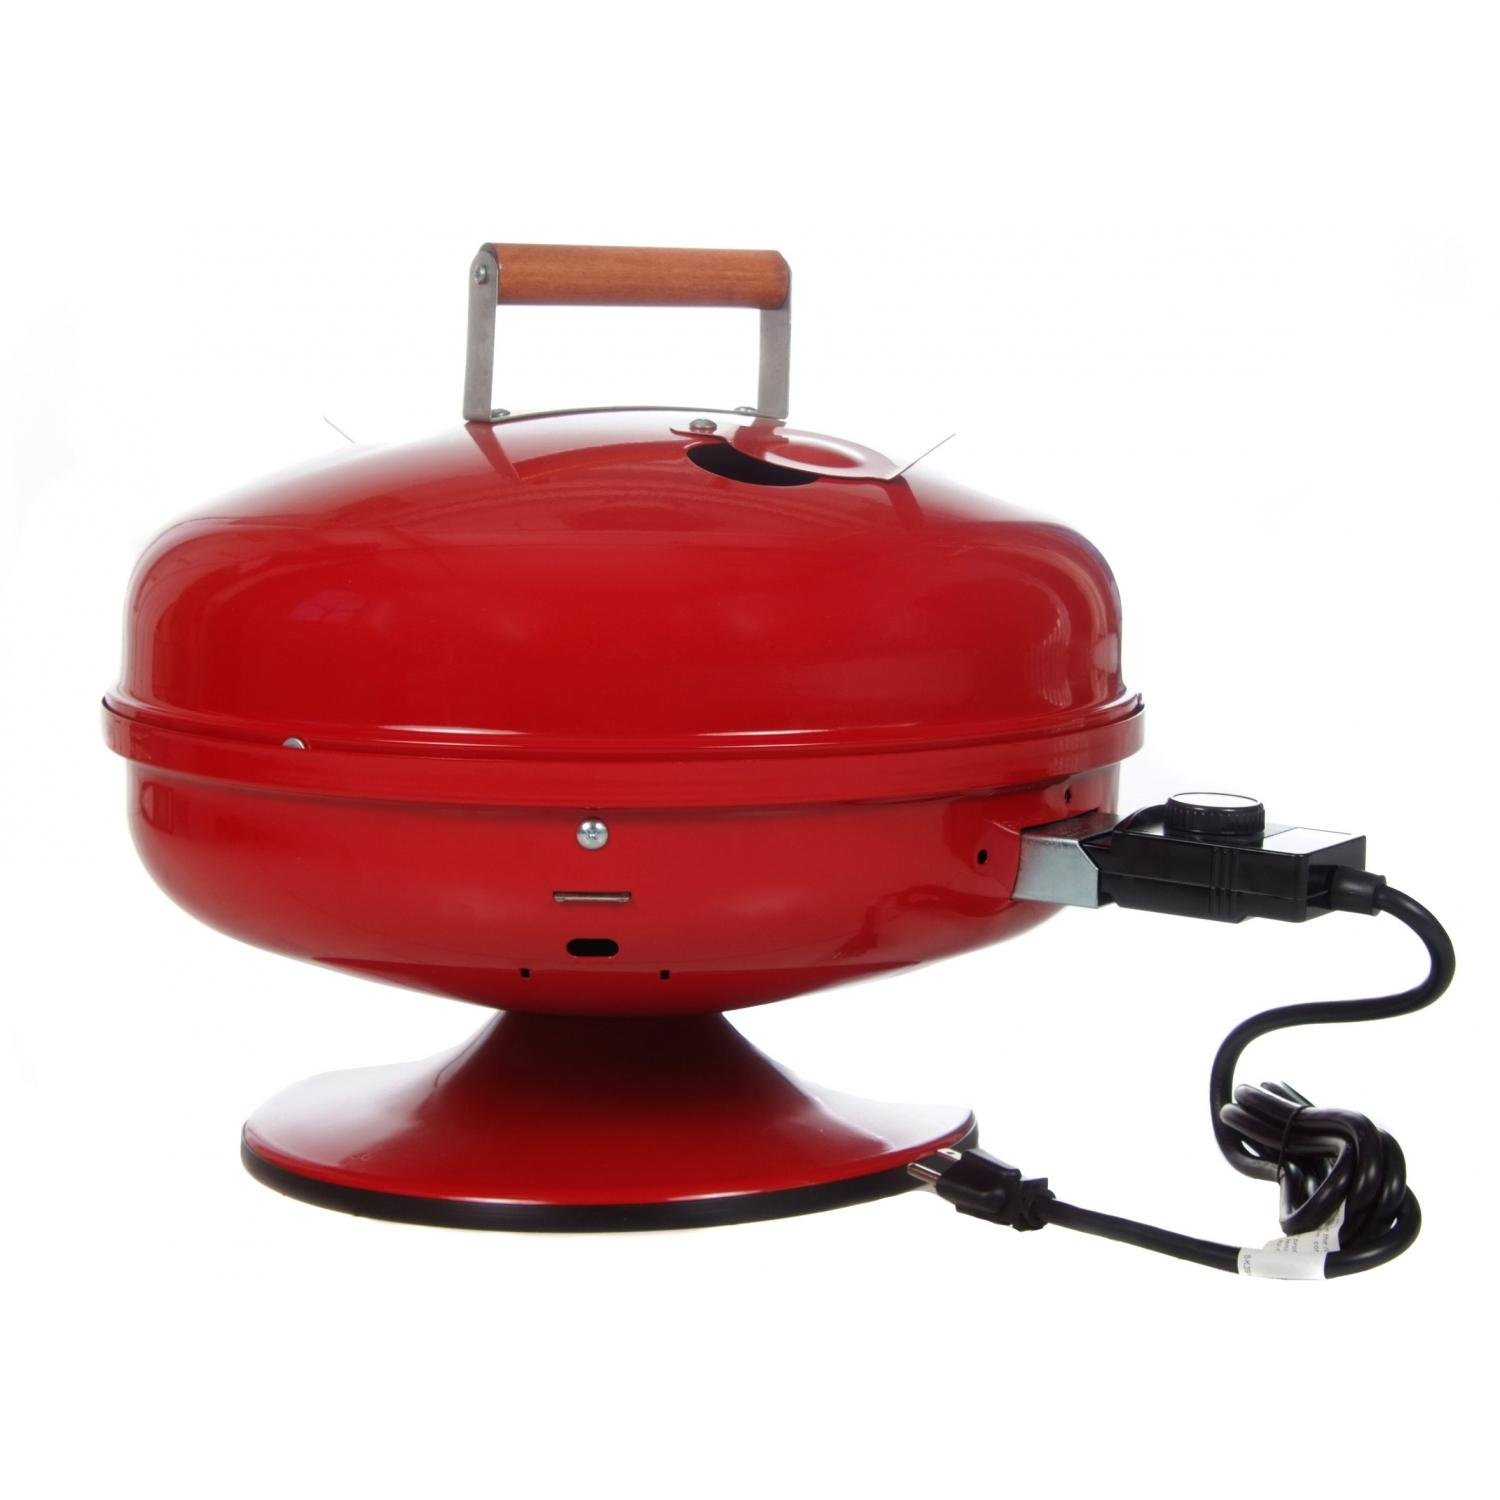 Meco Electric Grills Red 2120 Lock-n-go Portable Electric Bbq Grill